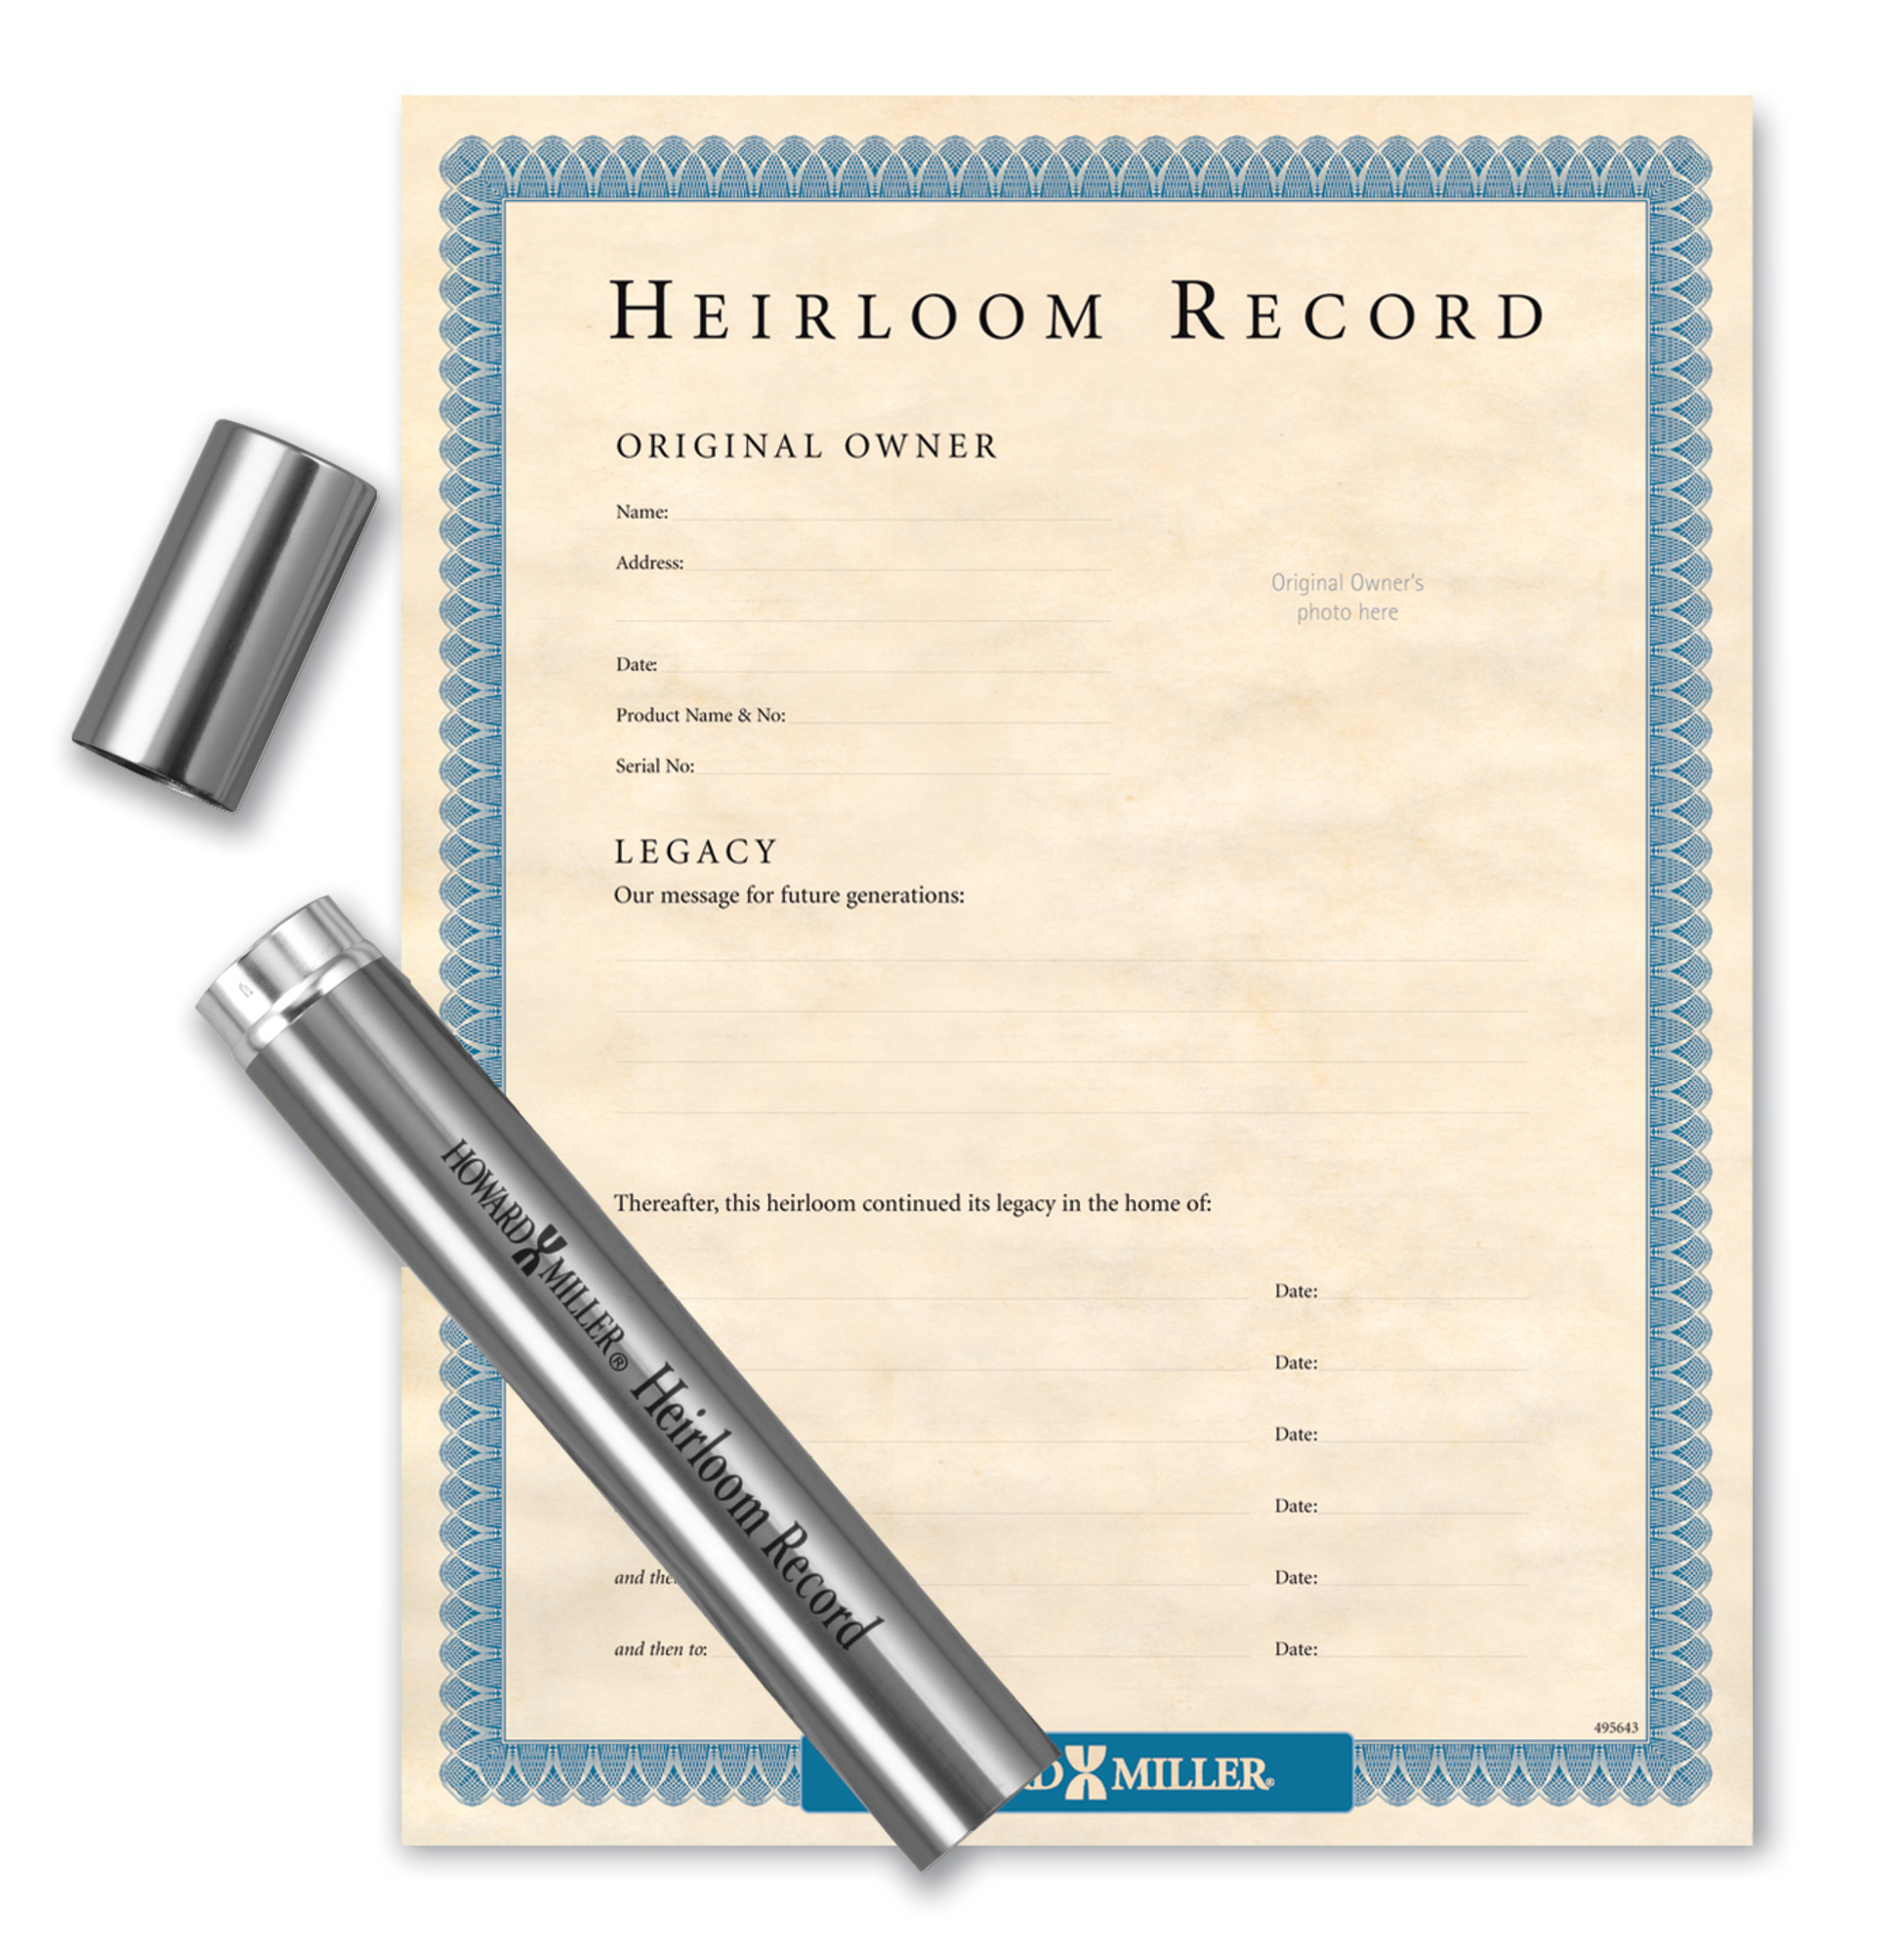 Image for 610011 Howard Miller Nickel Tube & Heirloom Document from Howard Miller Parts Store